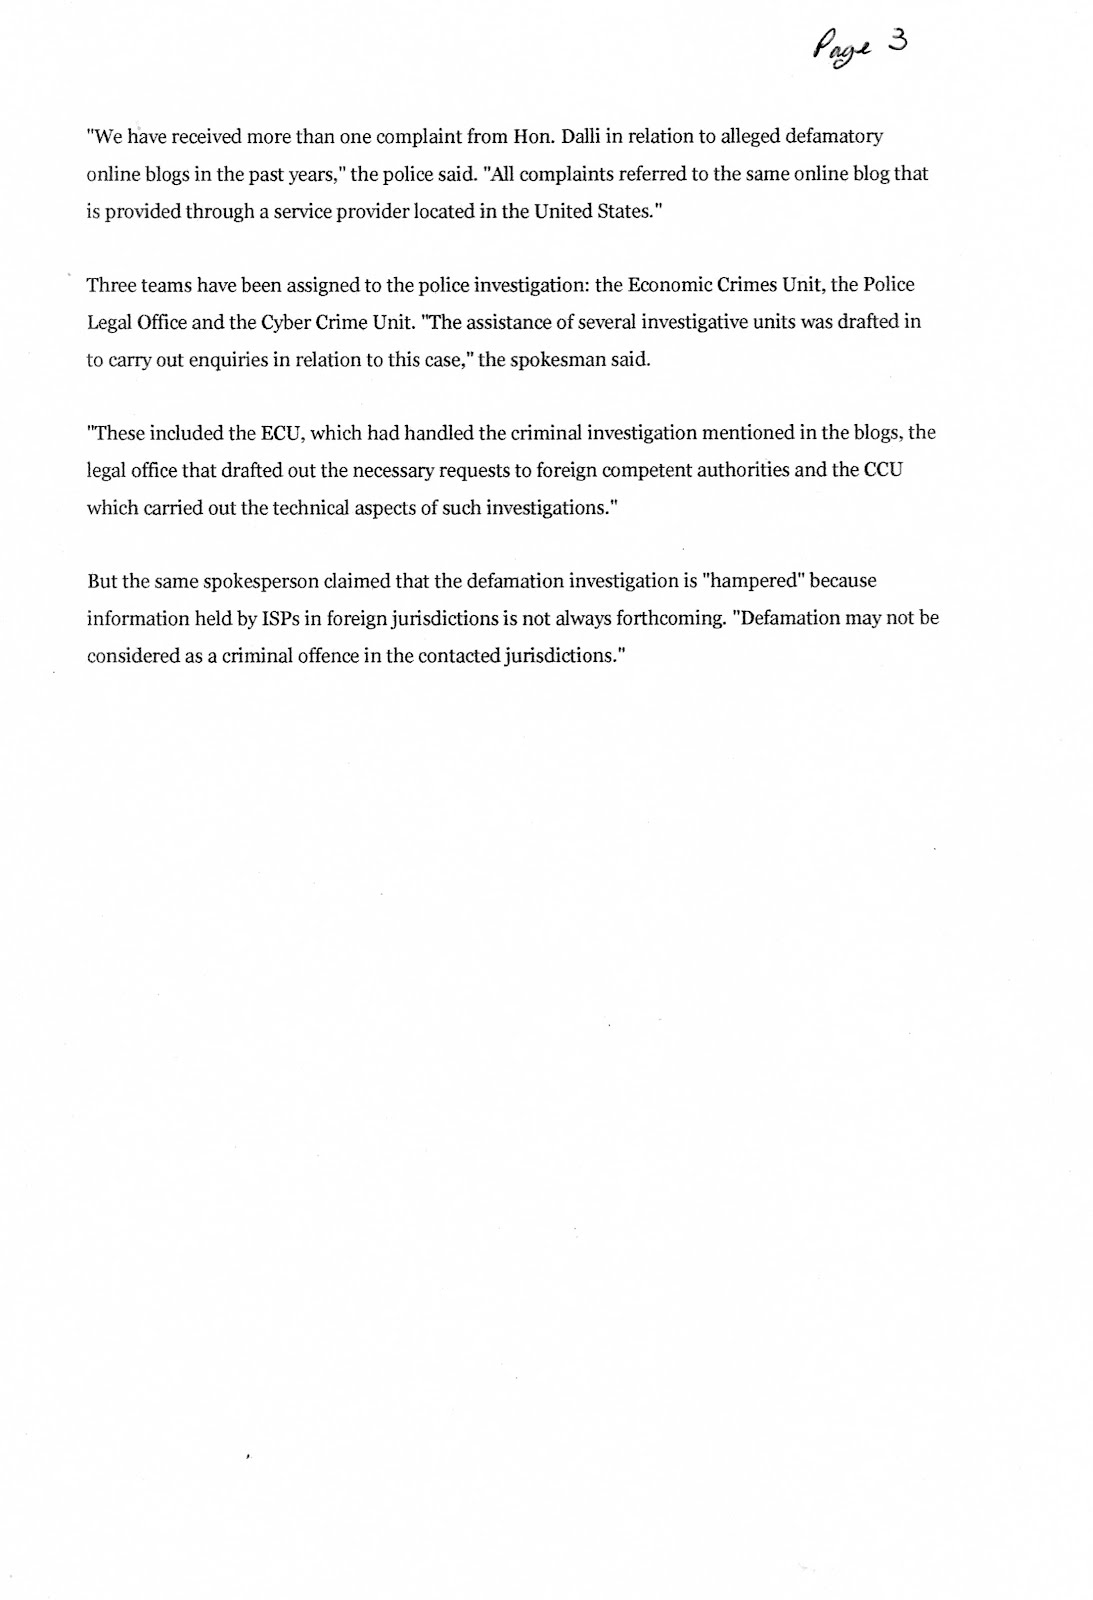 P3 - John Dalli Reports Blogs To Police